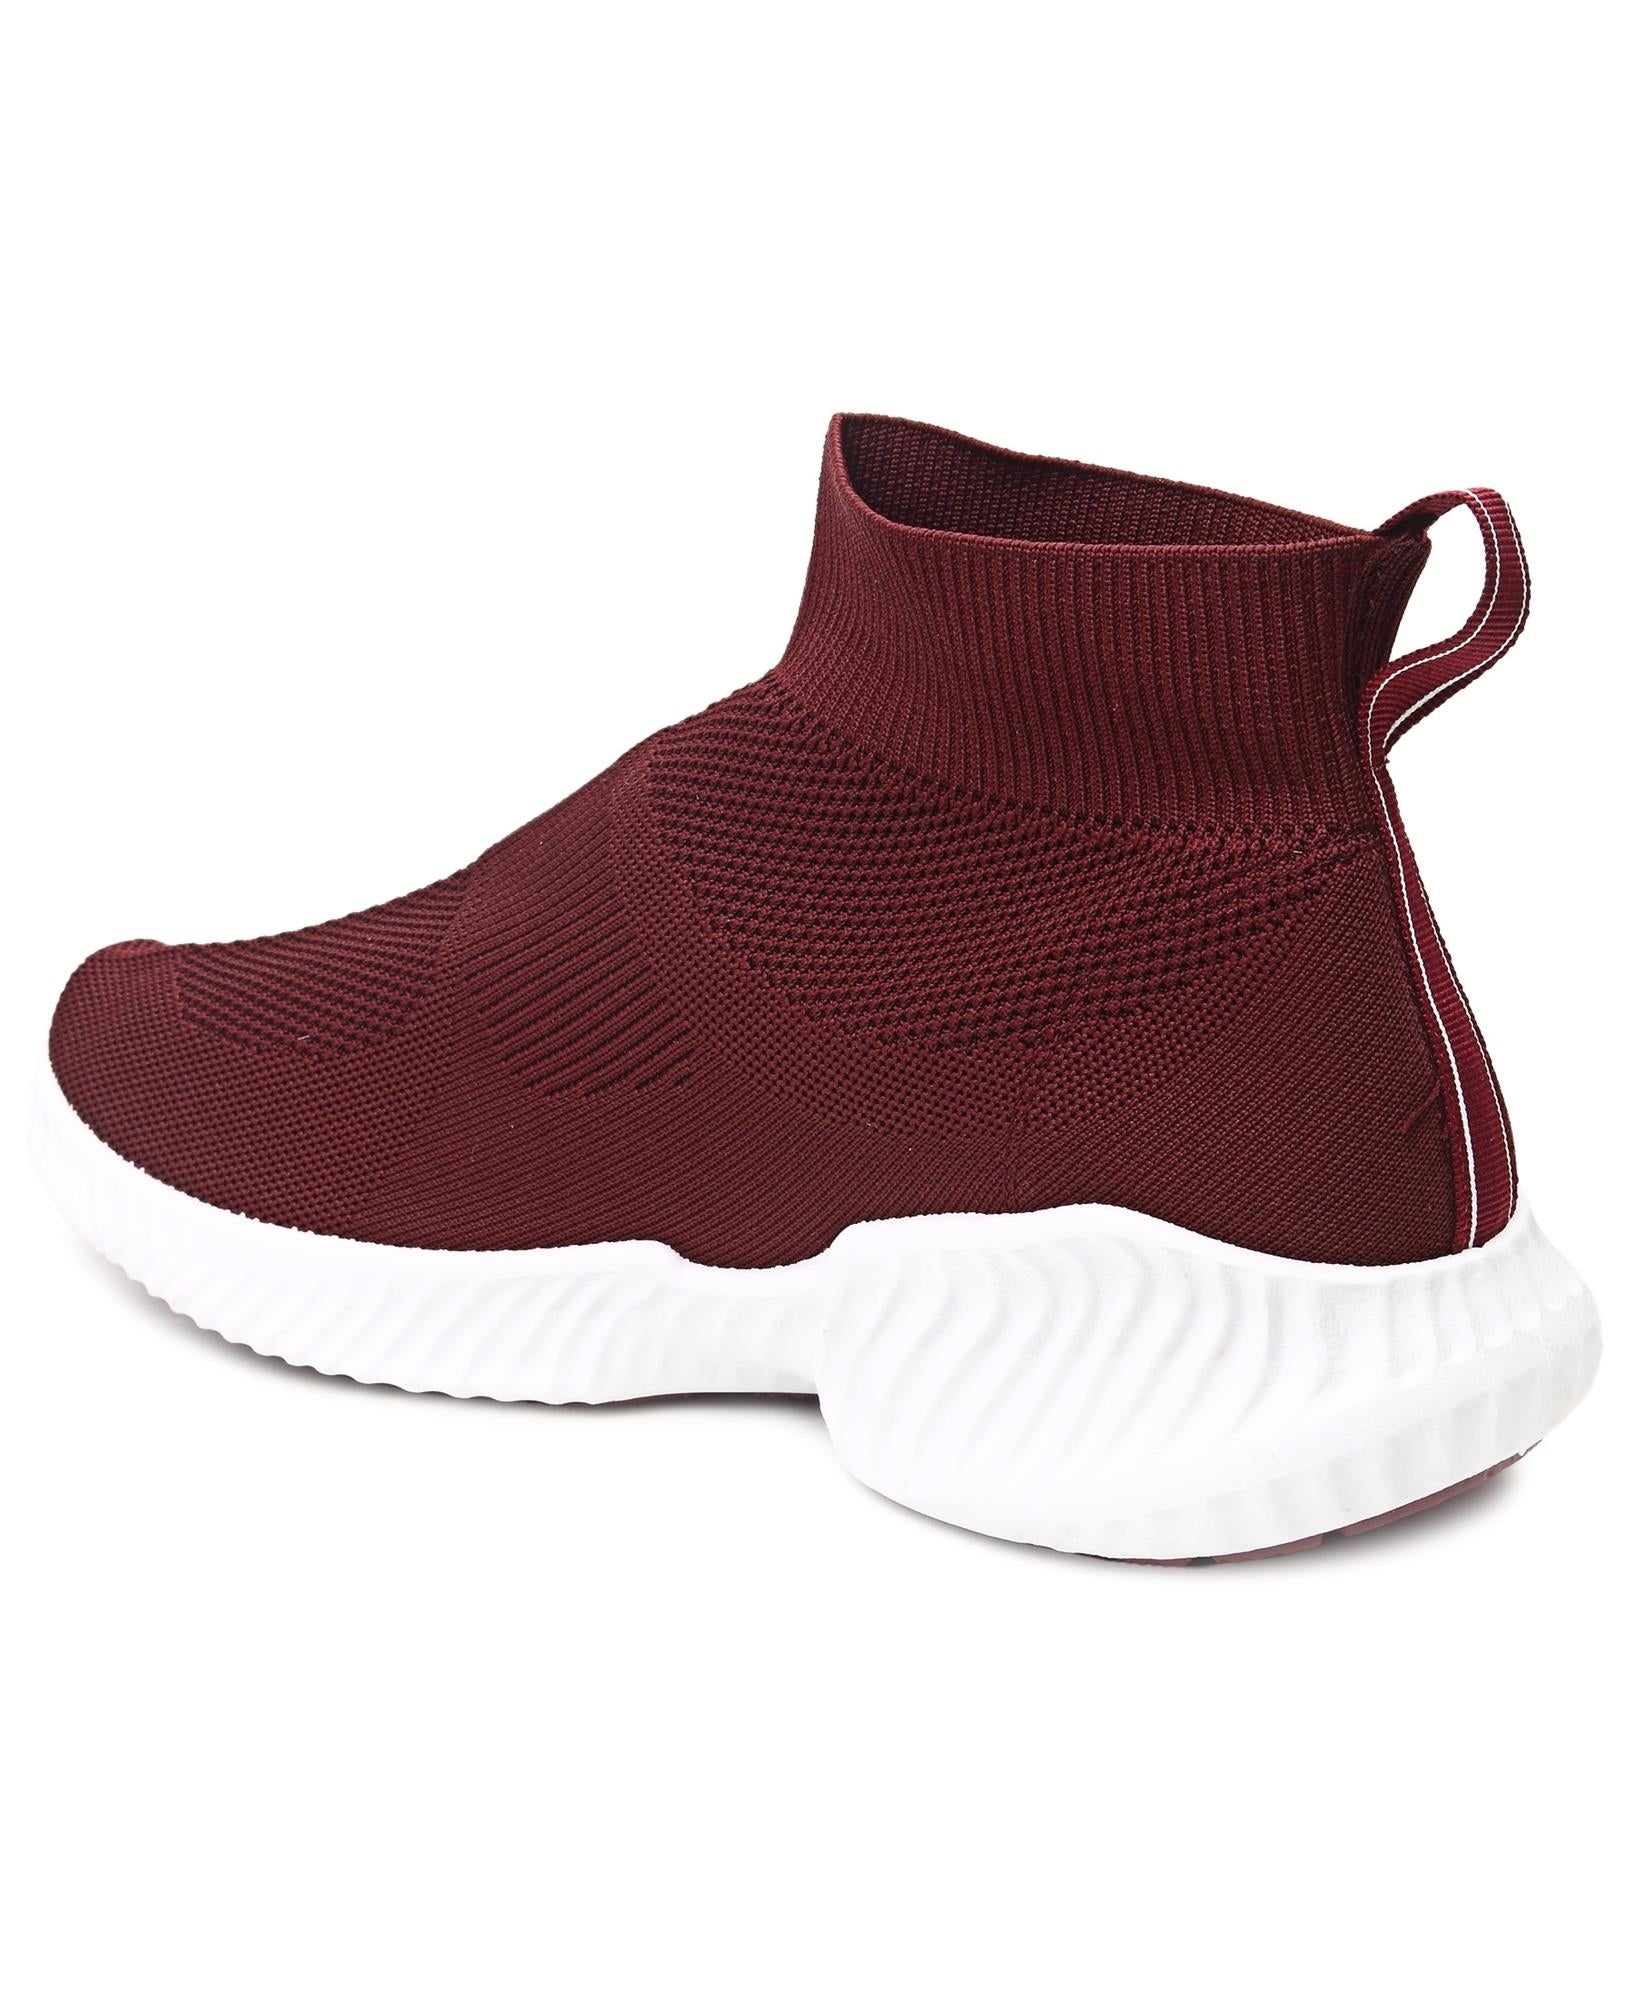 Men's Leap Boot Sneakers - Burgundy